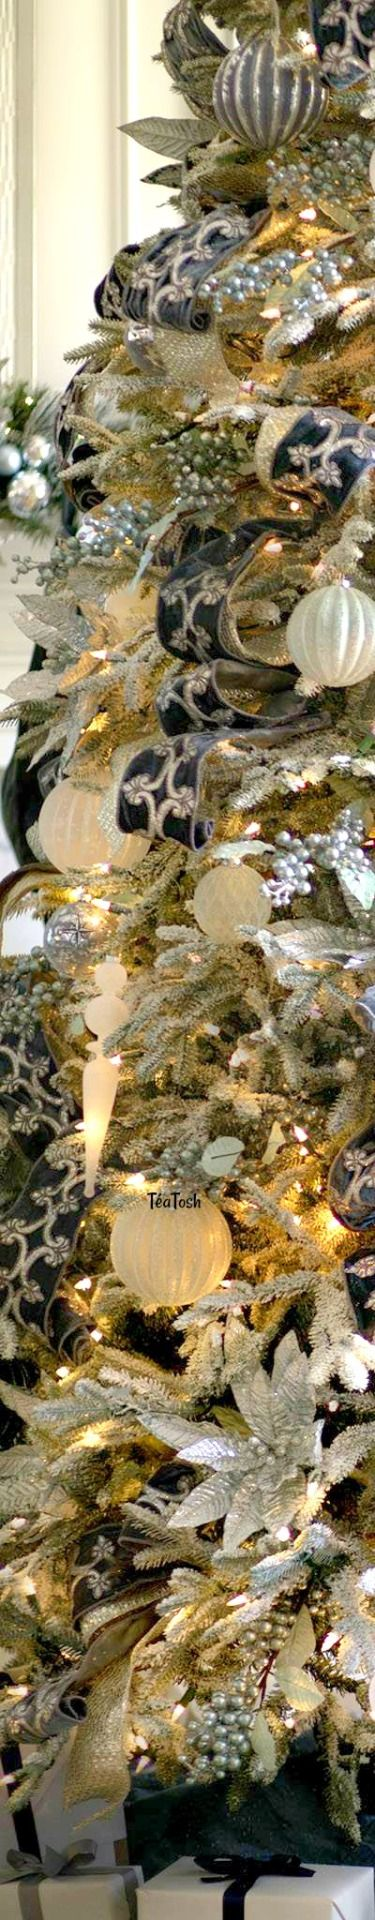 ❇Téa Tosh❇ French Blue Christmas Tree